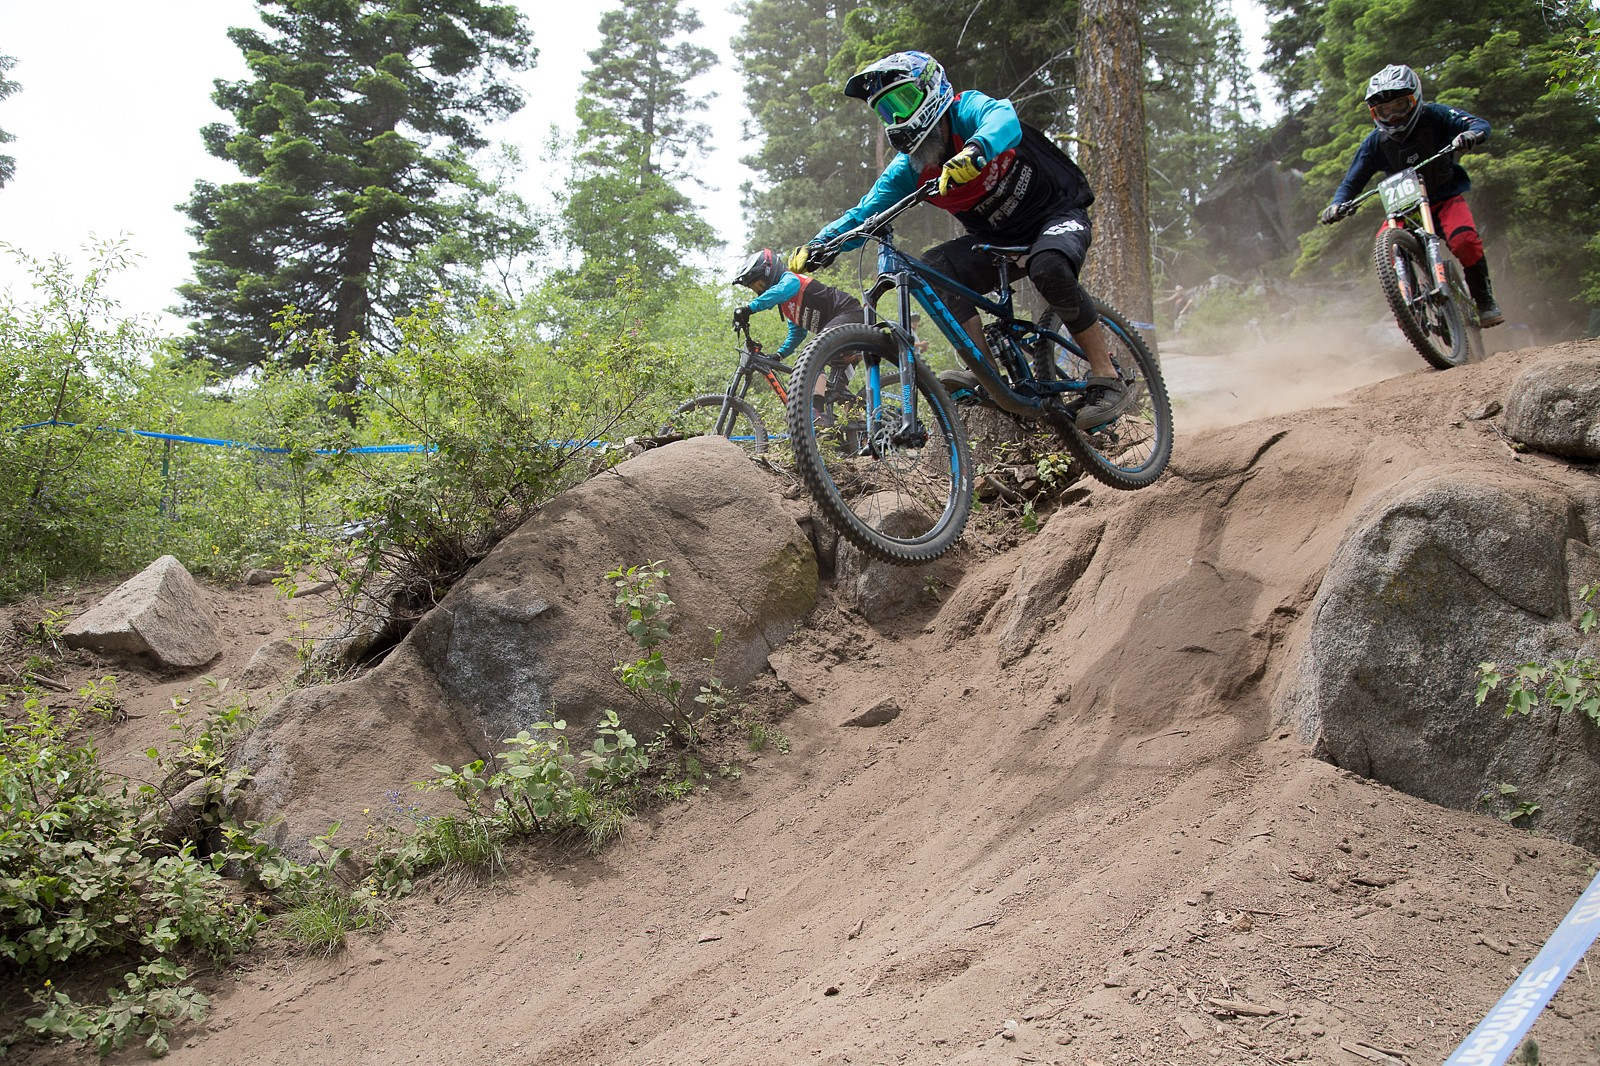 G-Out Project, Tamarack #USDH National-8 - G-Out Project - Tamarack NW Cup / #USDH - Mountain Biking Pictures - Vital MTB